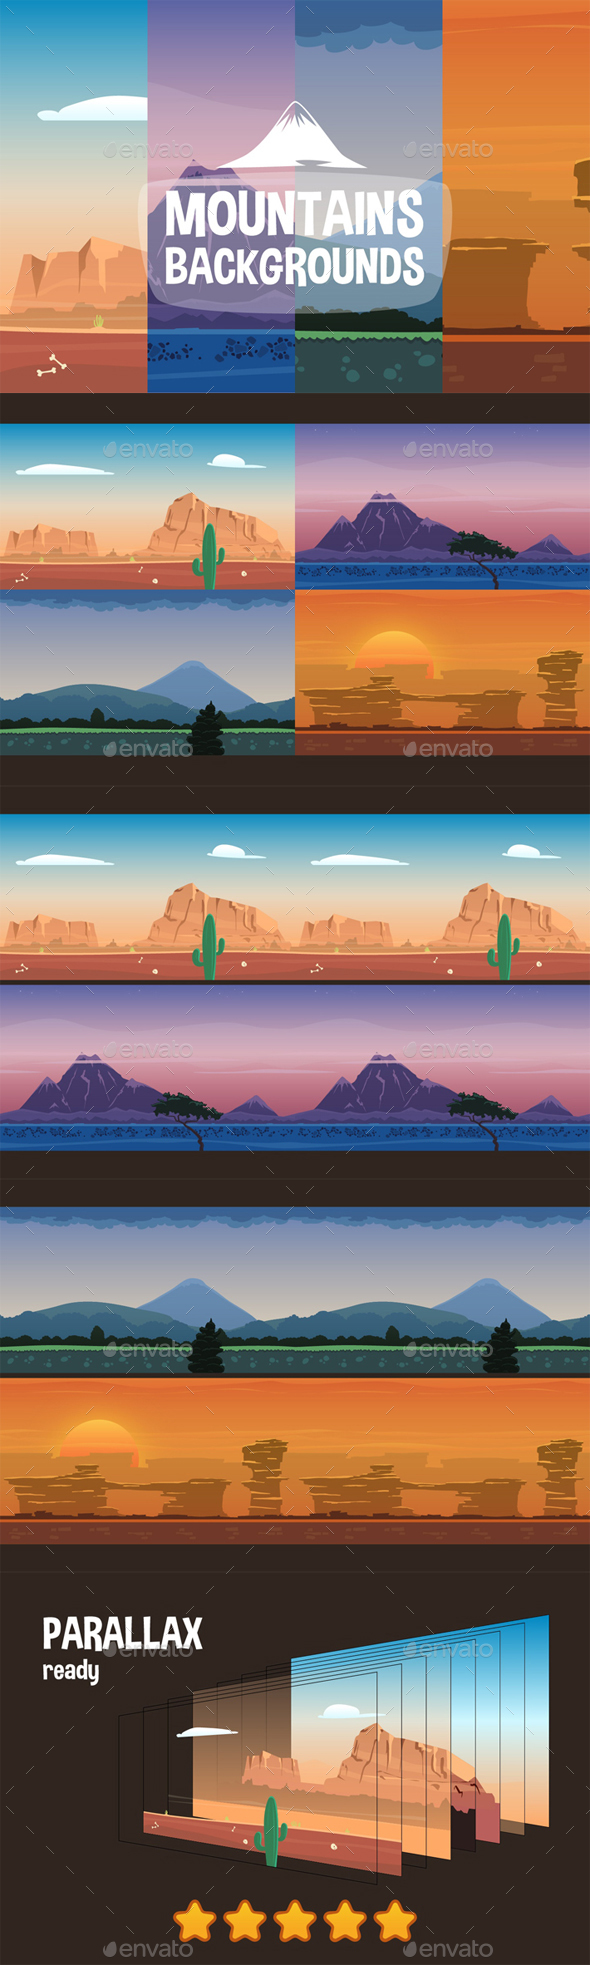 2D Game Mountain Parallax Backgrounds - Backgrounds Game Assets